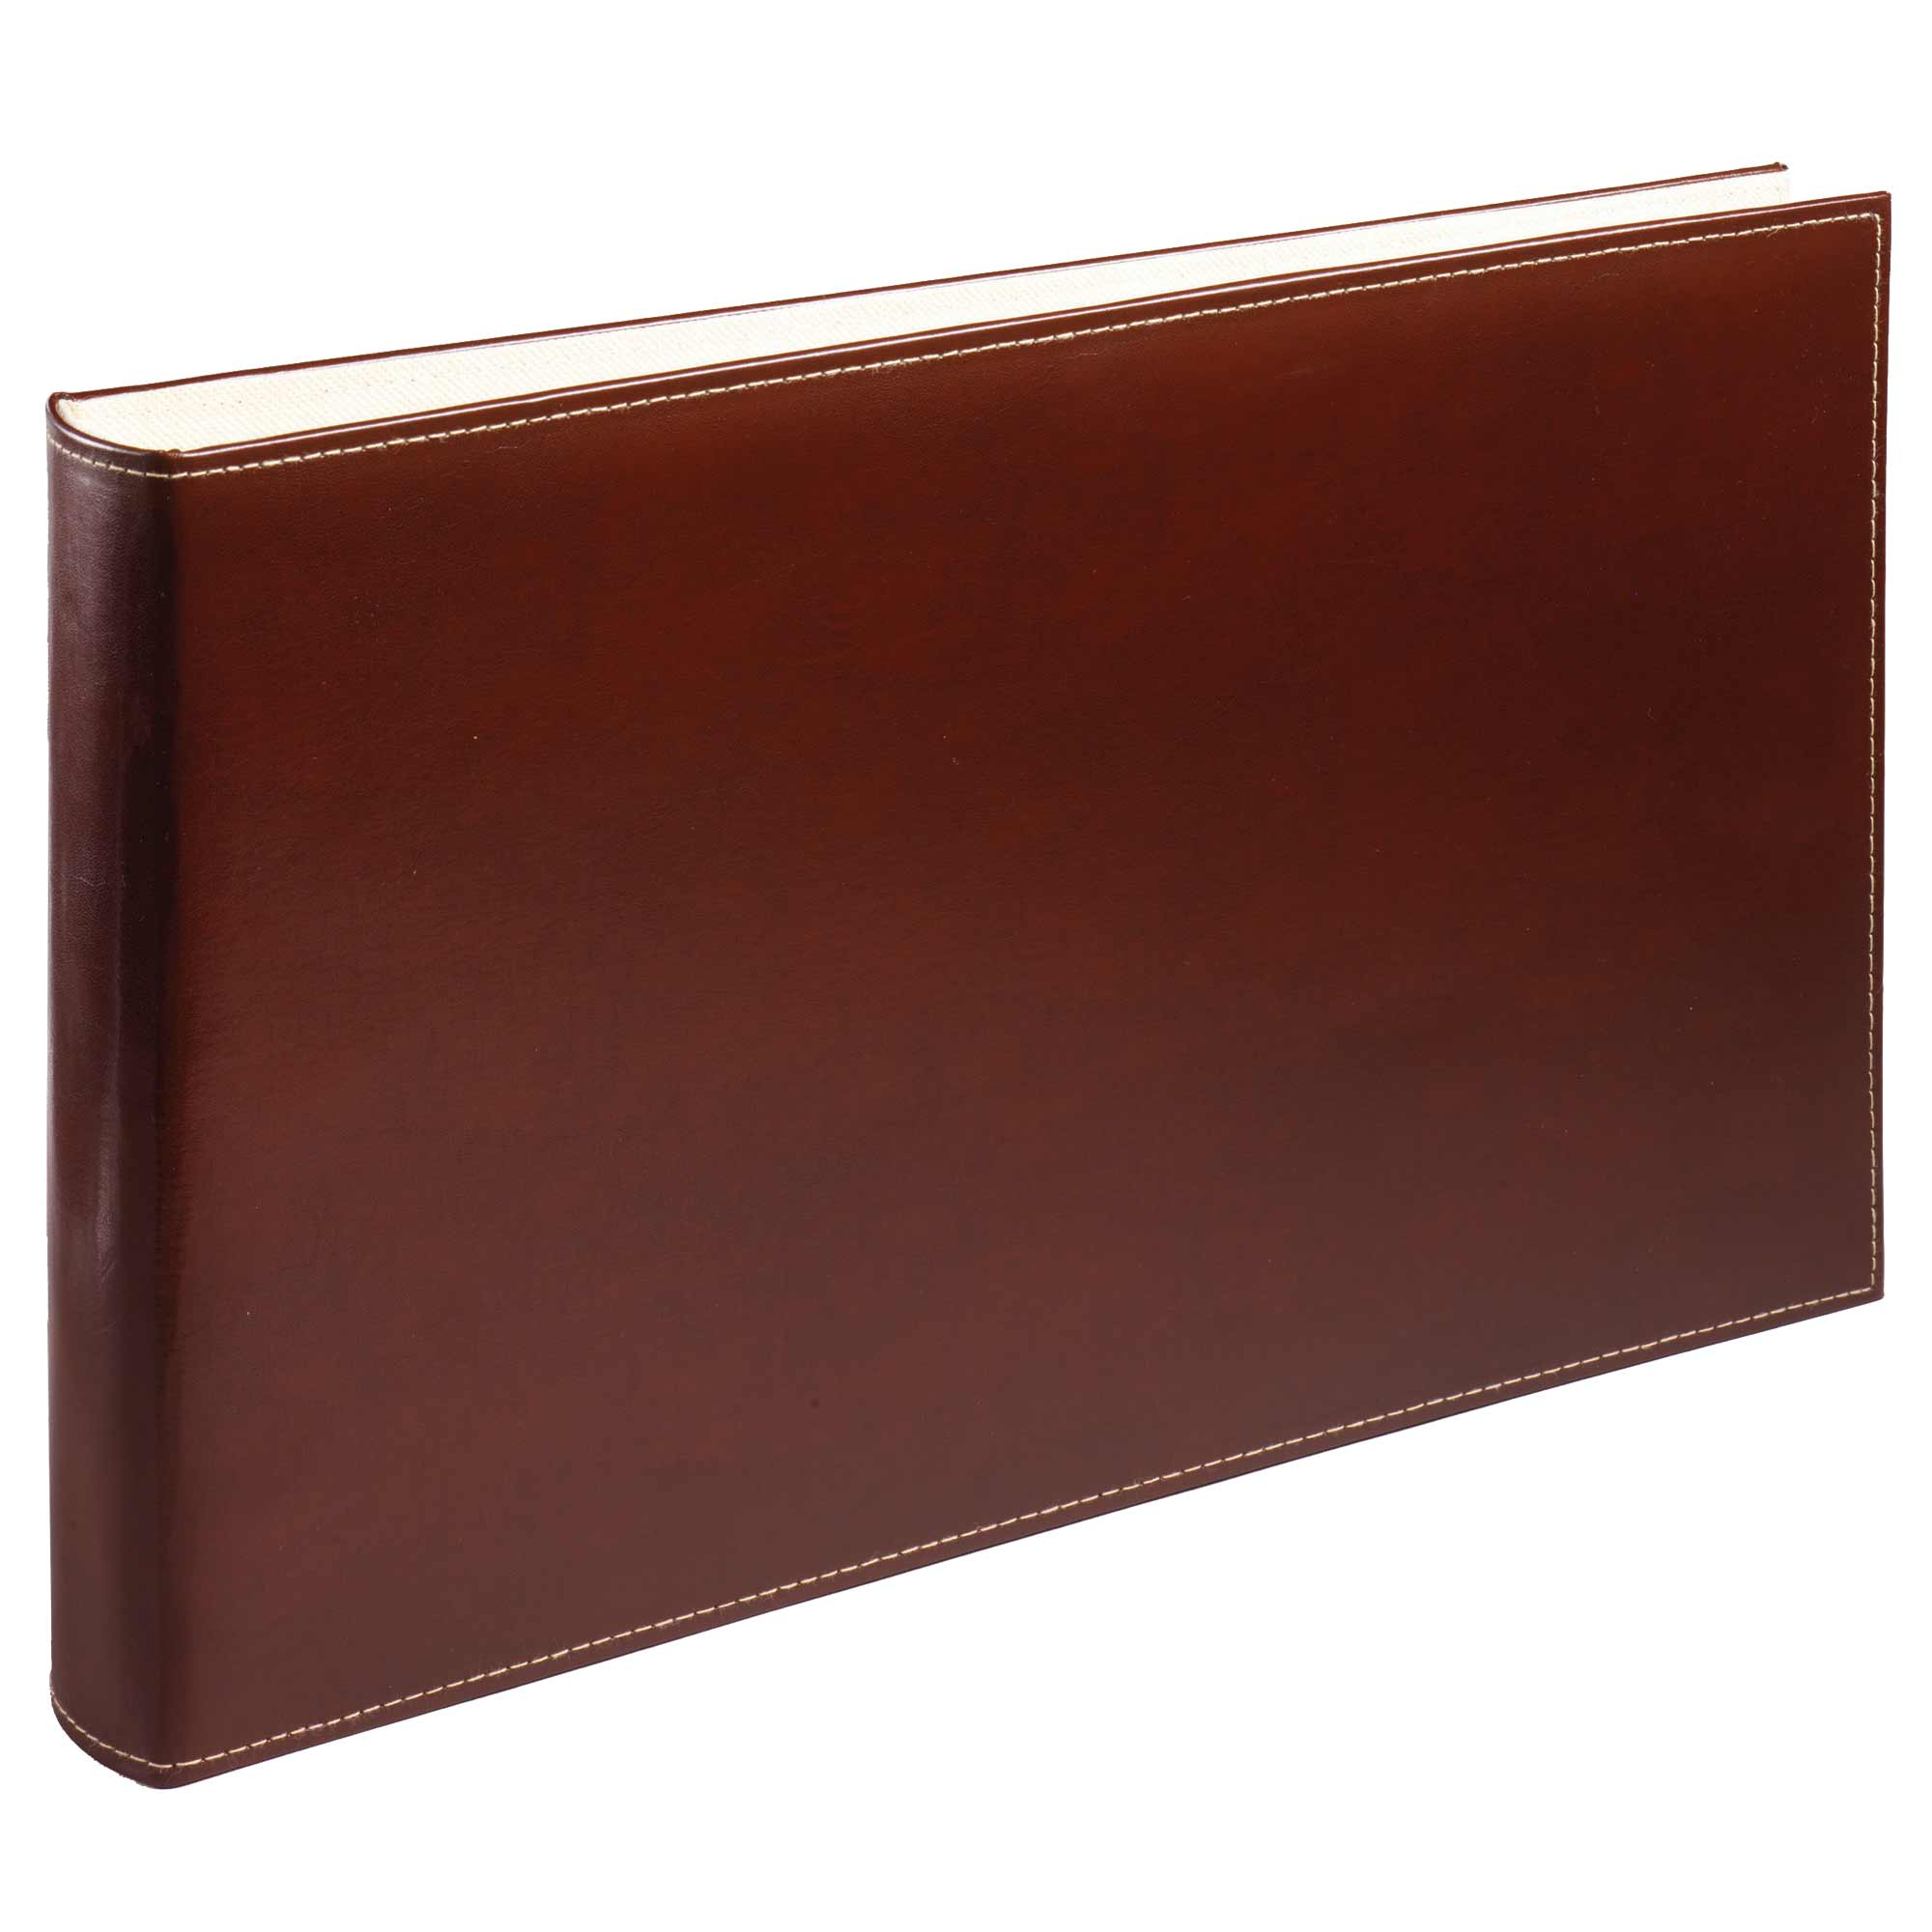 Family History Deluxe Burgundy Leather Certificate Binder Album Folder